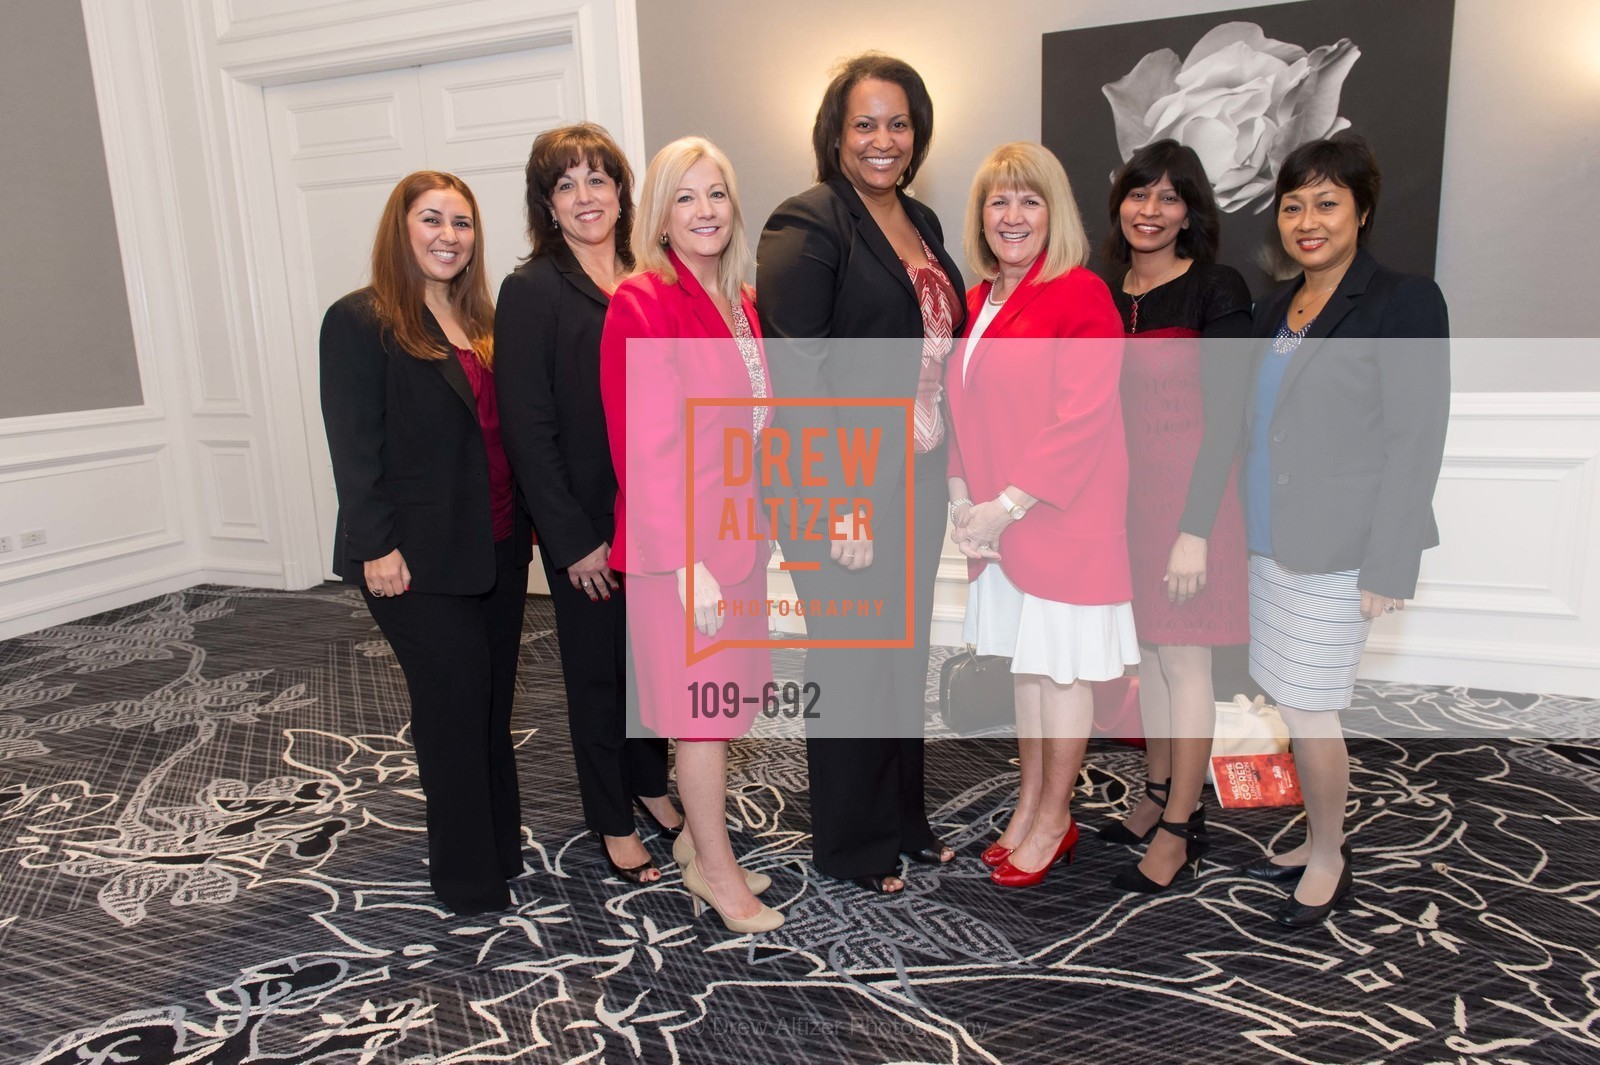 Fahar Hijazi, Paola Chesser, Linda Patrick, Rebecca Gaff, Elaine Genebro, Meatu Gupta, Conchita Miller, 2015 GoRed for Women Luncheon, US, May 2nd, 2015,Drew Altizer, Drew Altizer Photography, full-service agency, private events, San Francisco photographer, photographer california